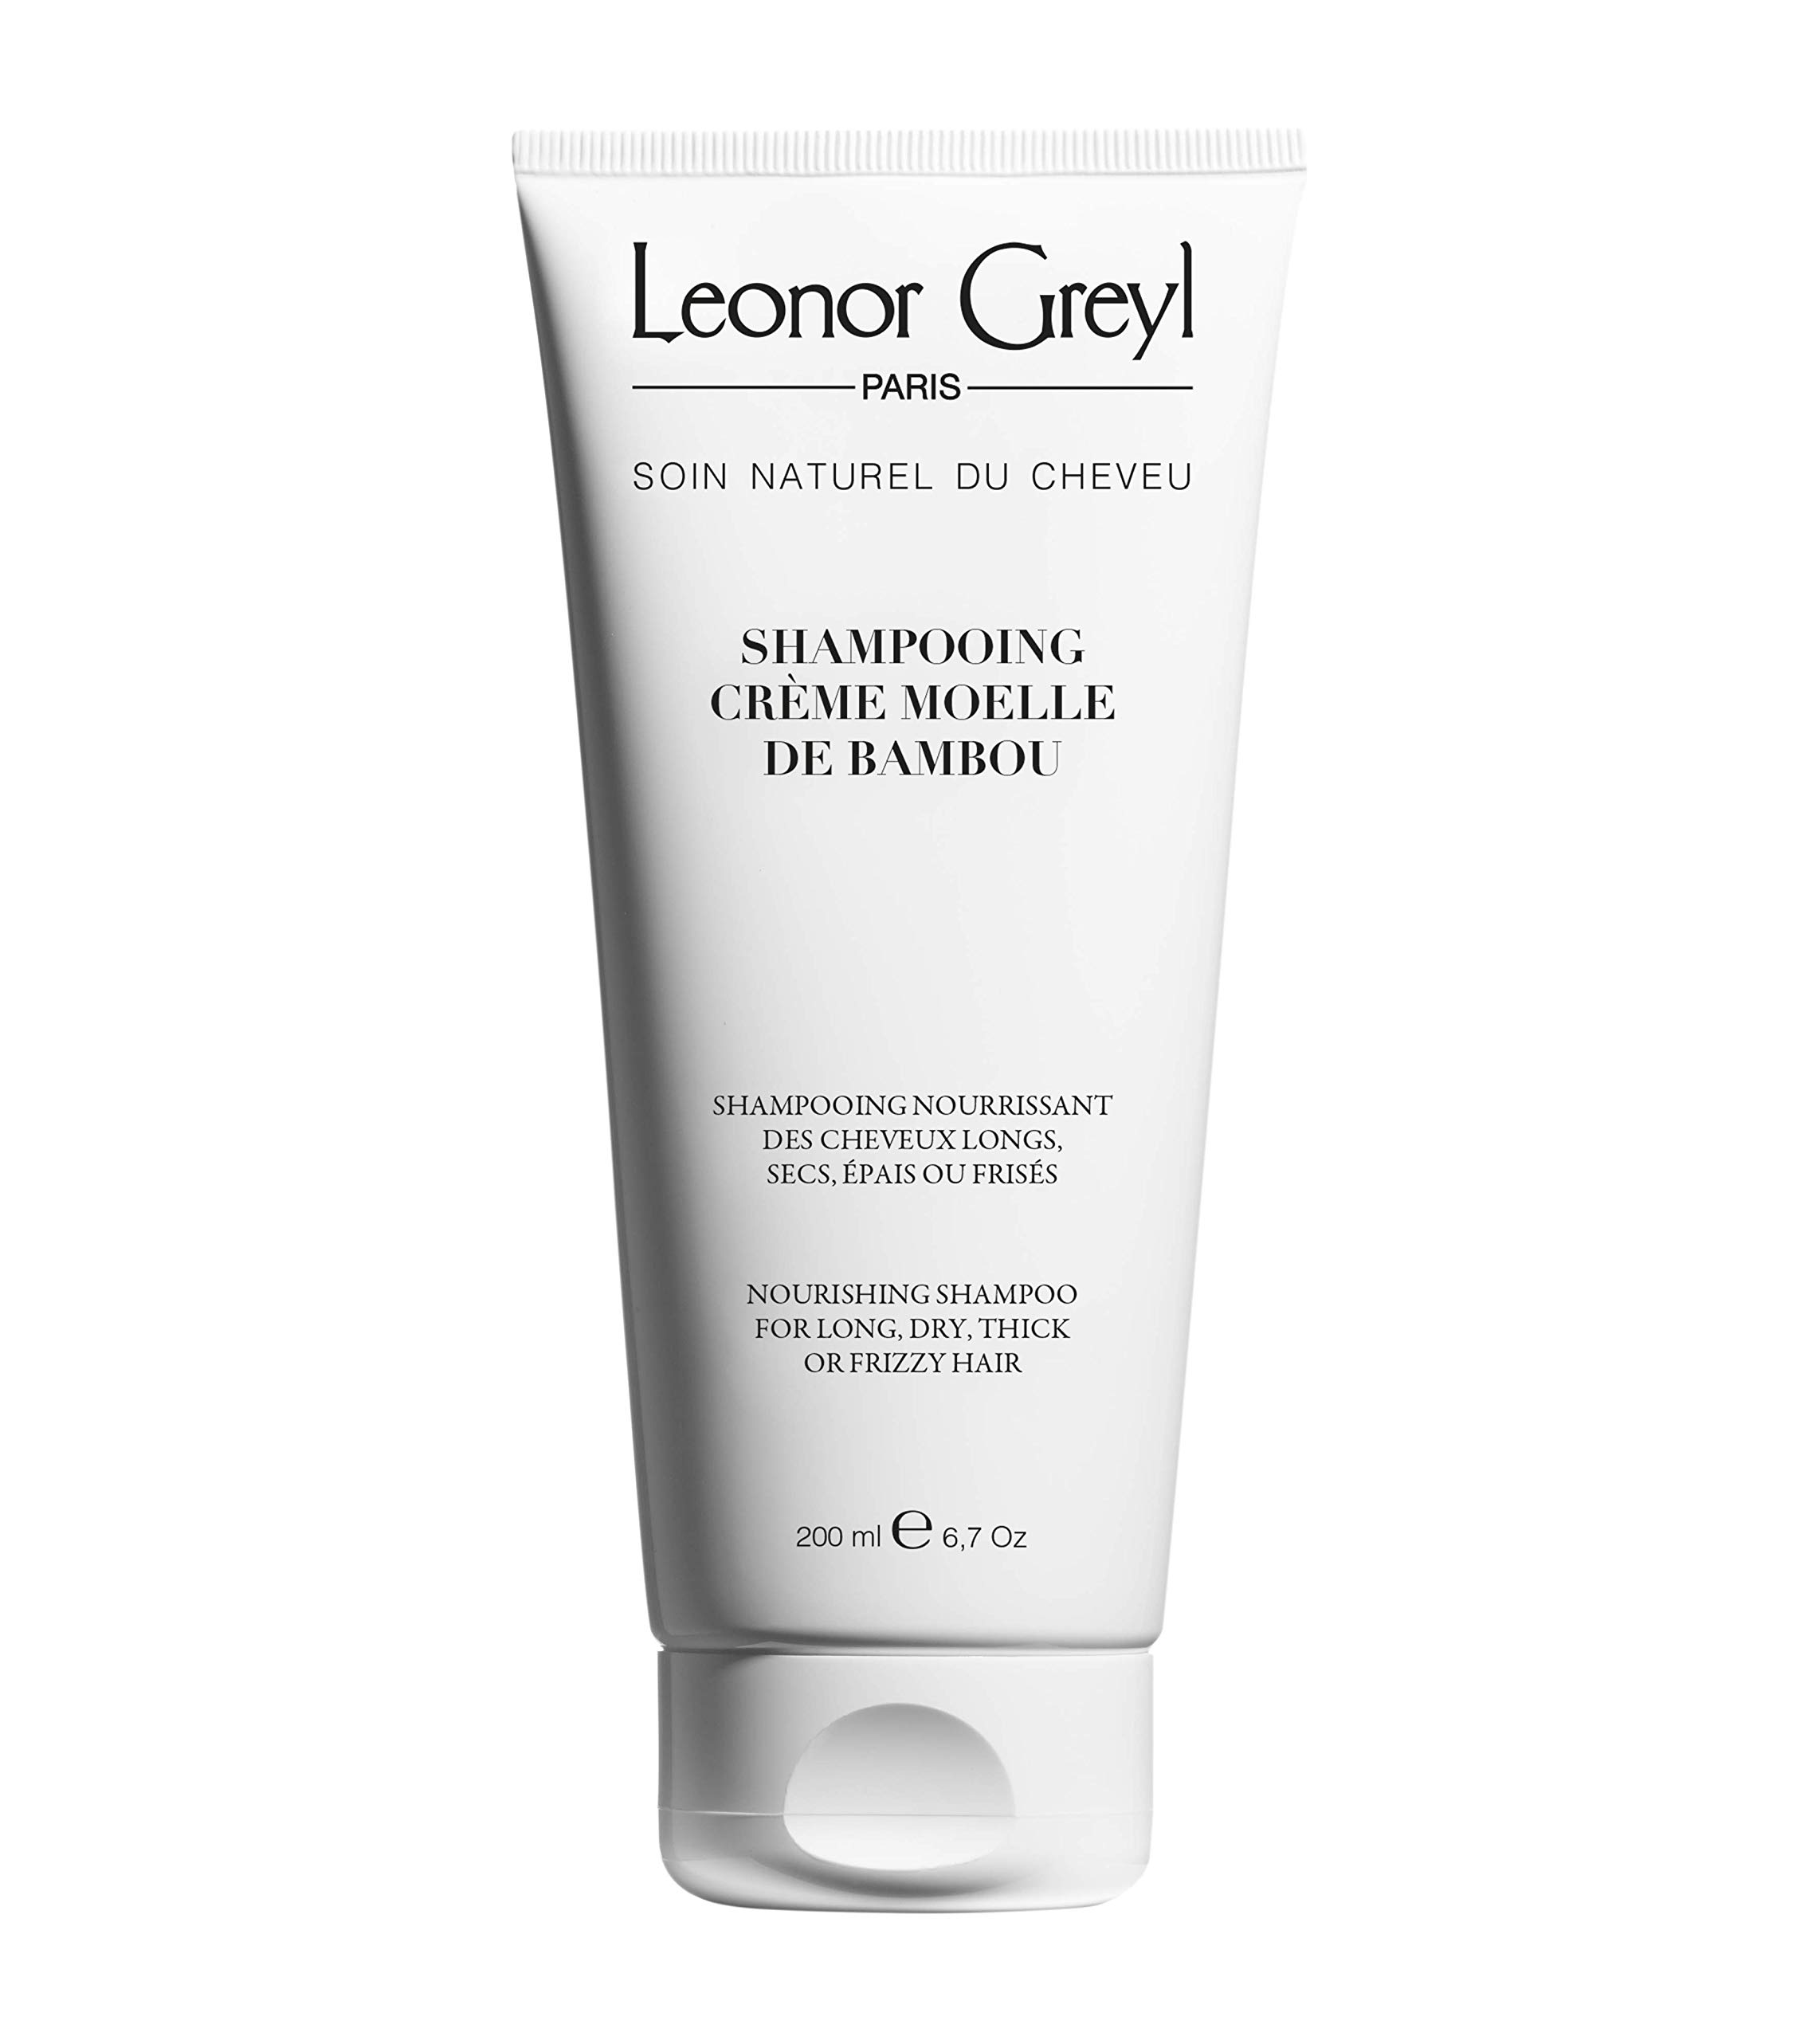 Leonor Greyl Paris Shampooing Crème Moelle de Bambou - Nourishing Shampoo for Dry, Thick or Frizzy Hair, 7 oz.